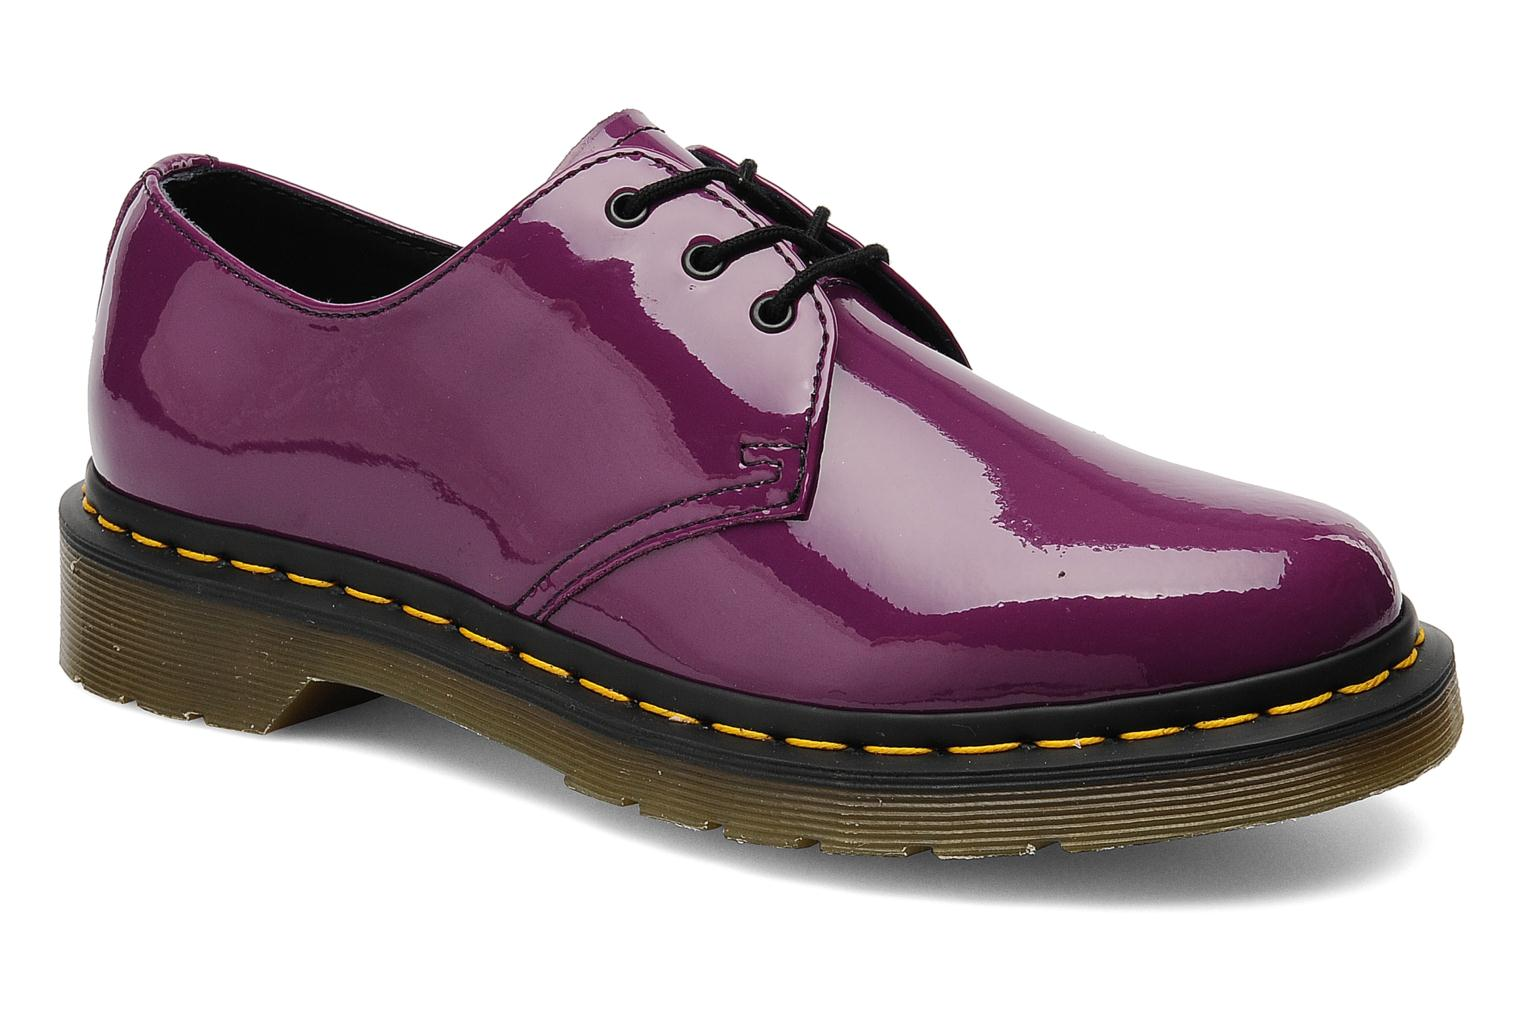 1461 Chaussures W Dr Lilas. Martens TivIe